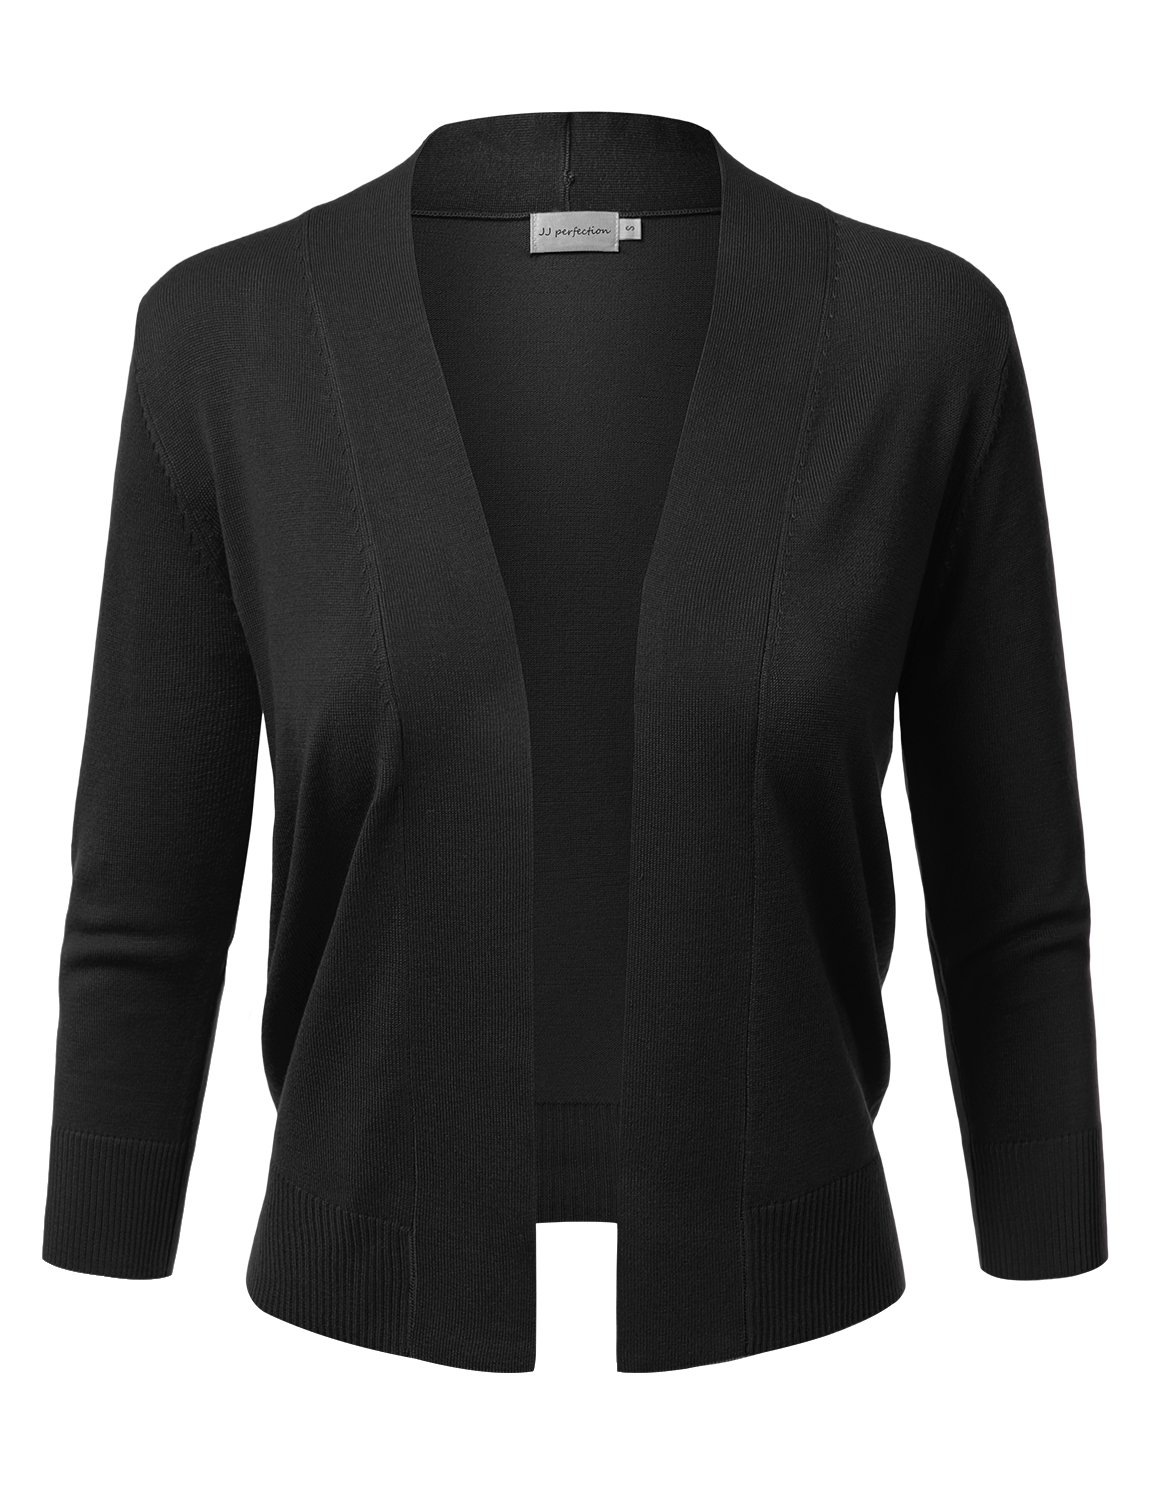 JJ Perfection Women's Basic 3/4 Sleeve Open Front Cropped Cardigan Black M